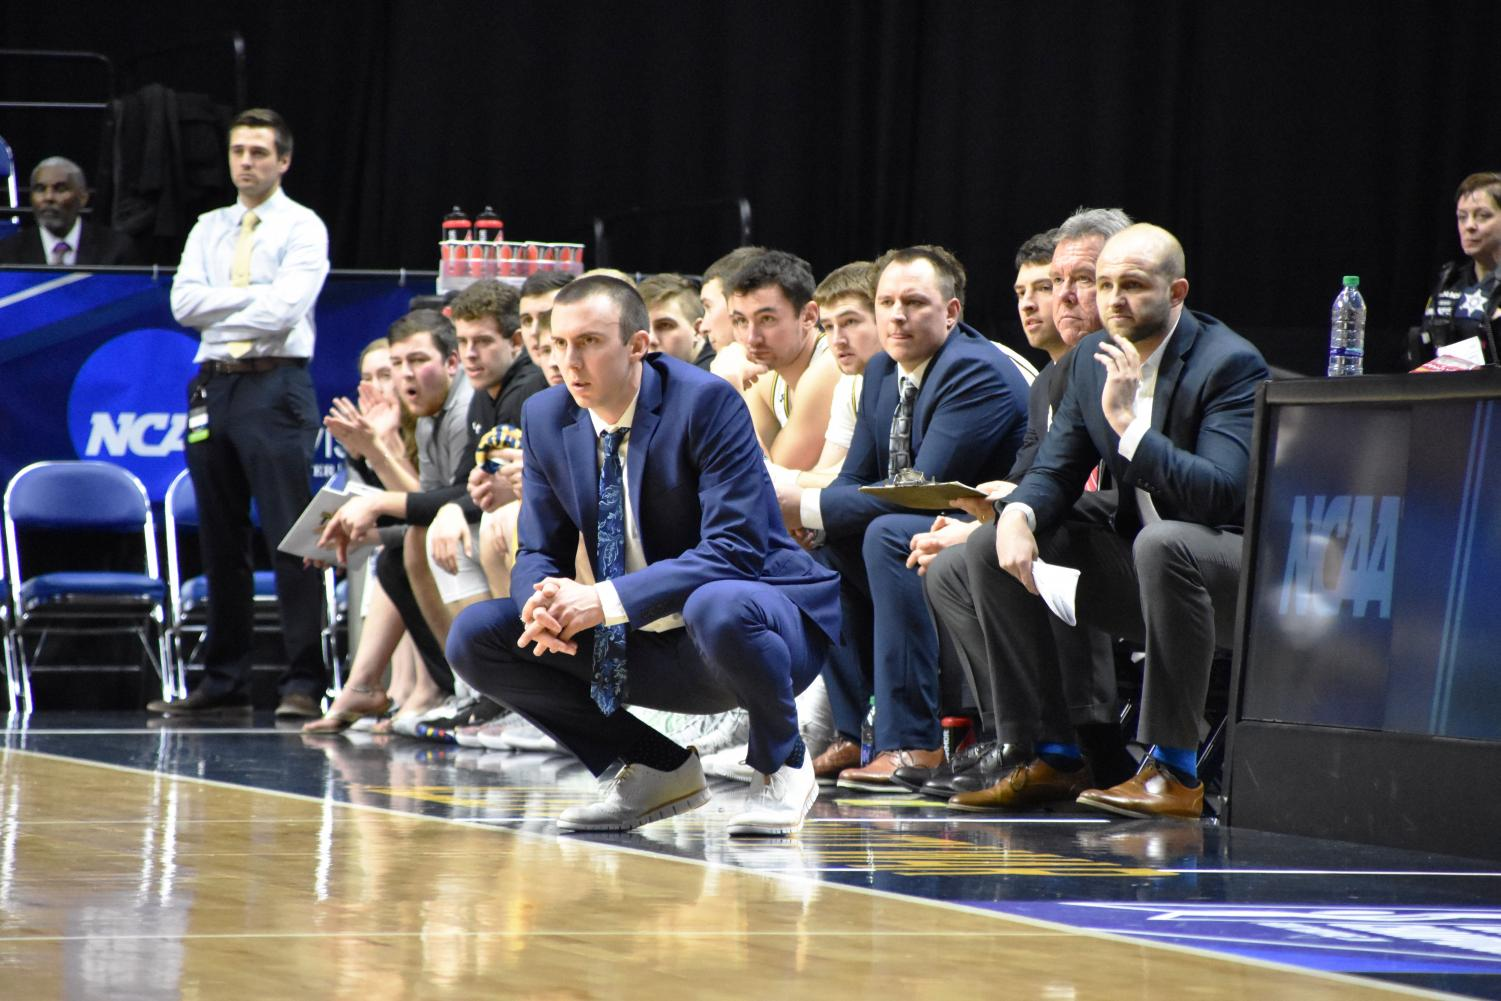 Head coach Matt Lewis is locked-in against Wheaton College in the 2019 NCAA semifinal game.